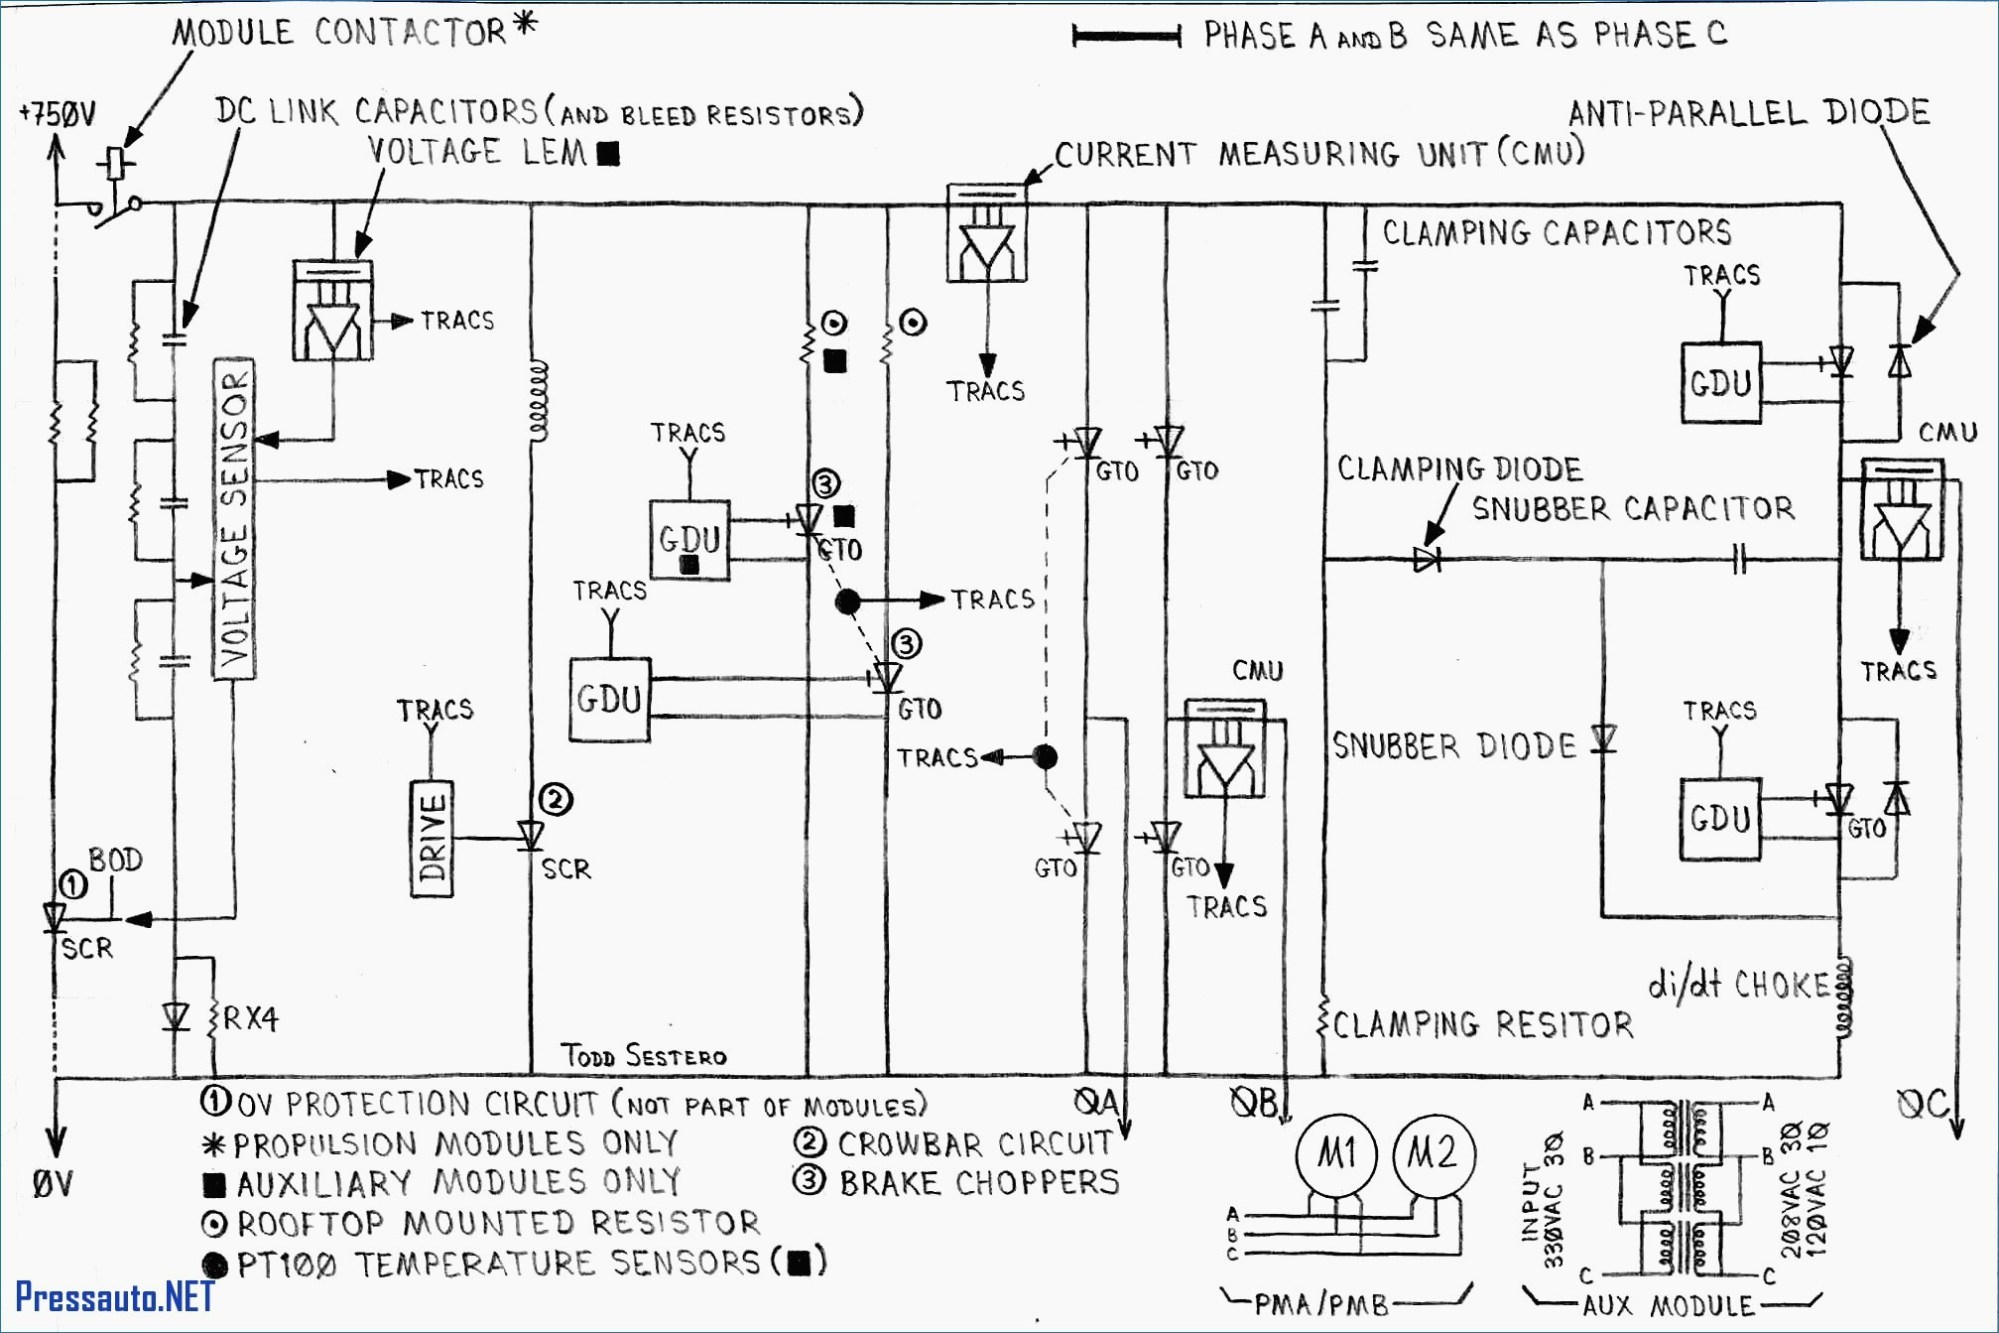 hight resolution of modine pae 250ac wiring diagram wiring library rh 24 evitta de modine heaters wiring diagram for pd modine gas fired unit heaters wiring diagram